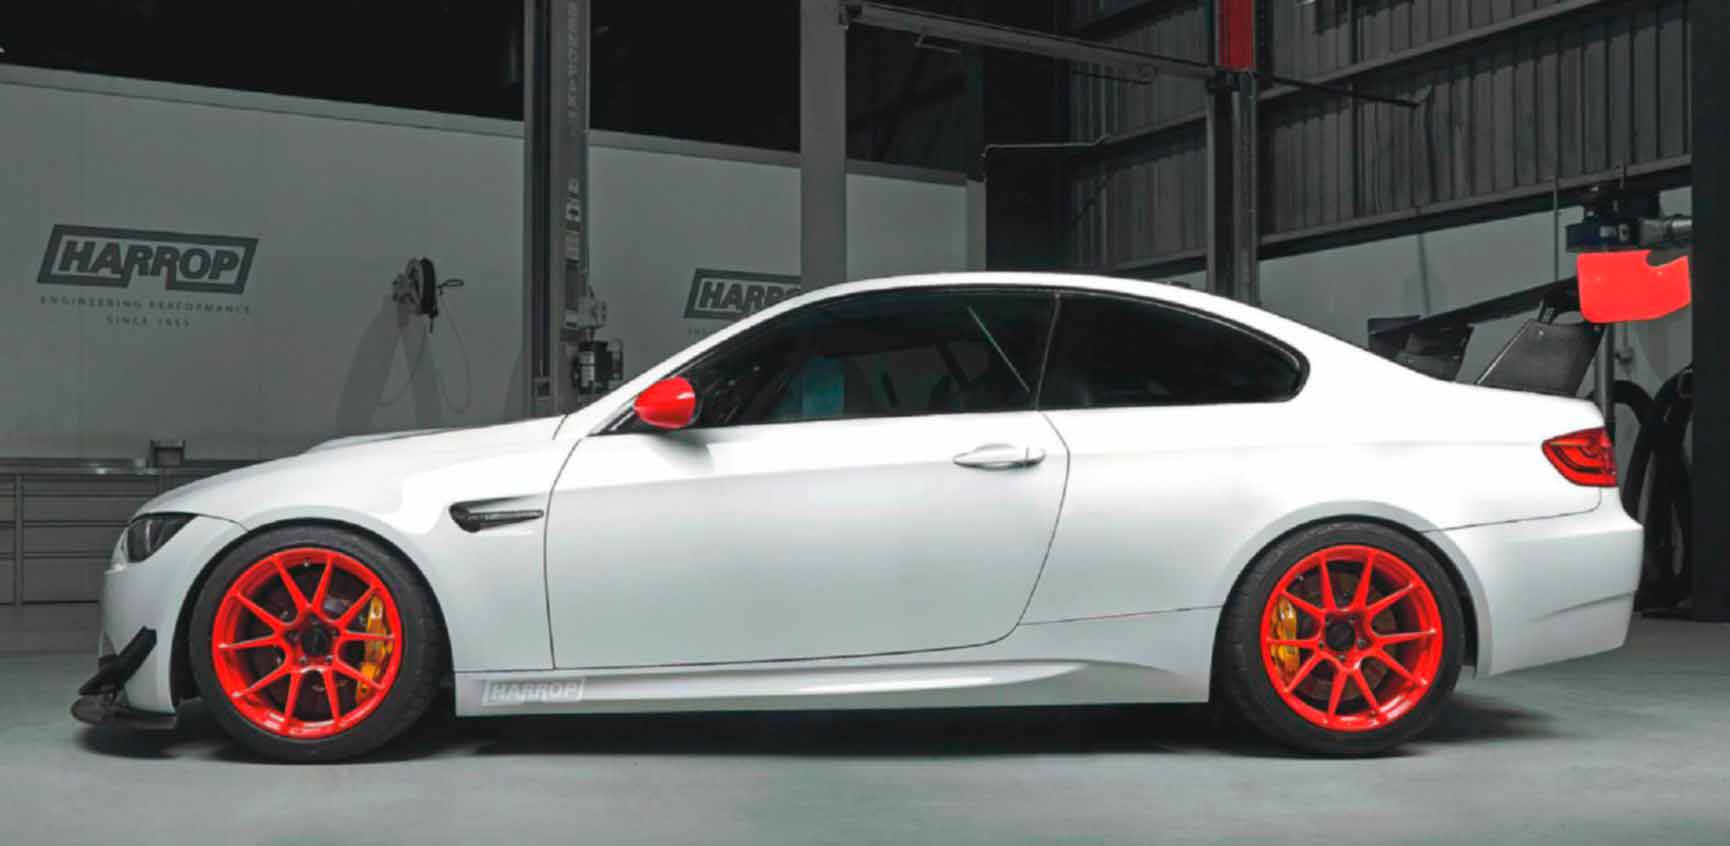 Supercharged 525whp BMW M3 E92 - Drive-My Blogs - Drive